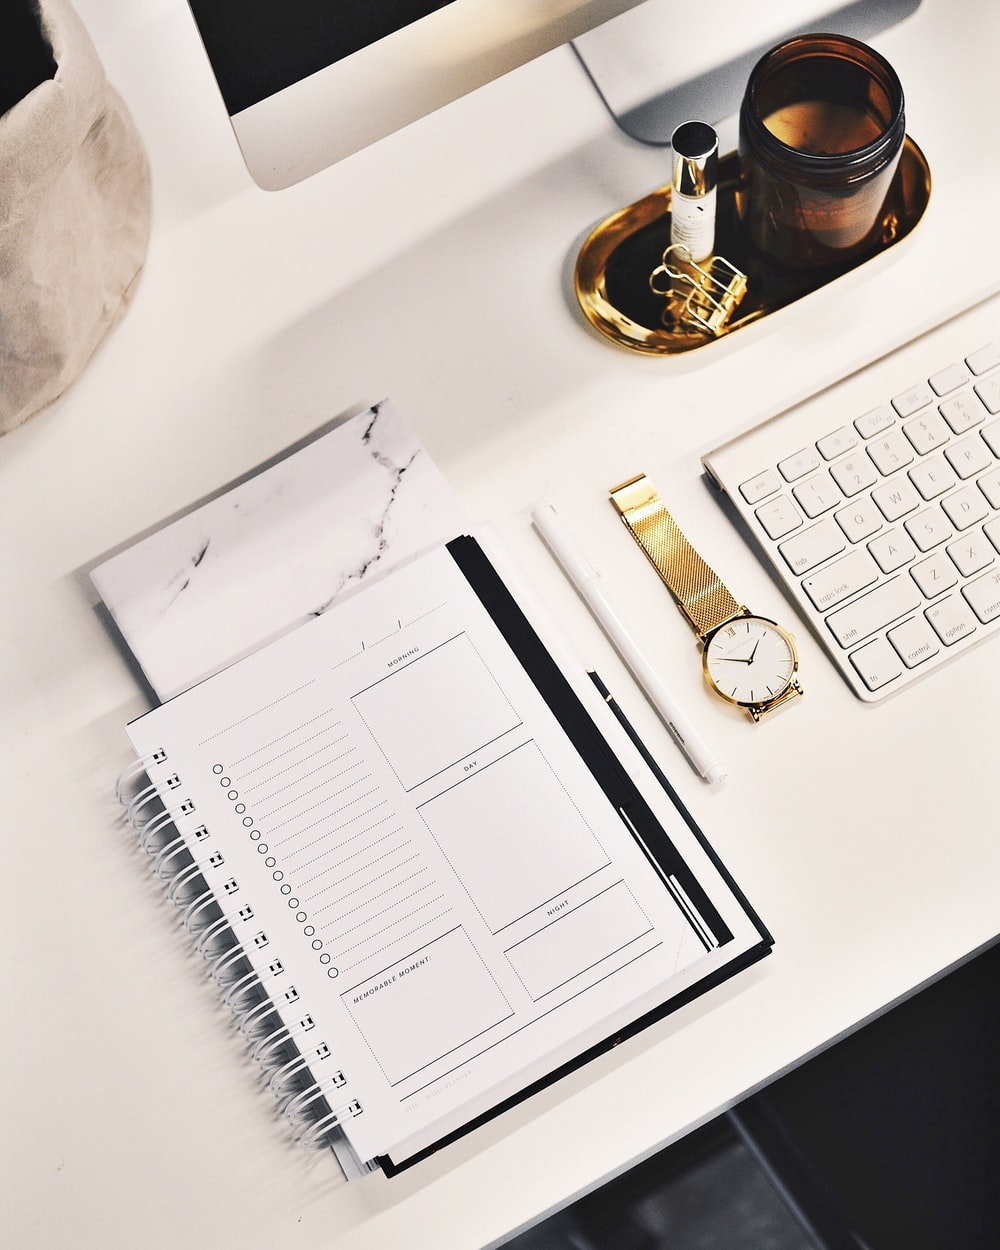 A flatlay image of a desk with a keyboard, gold watch, notebook and more.